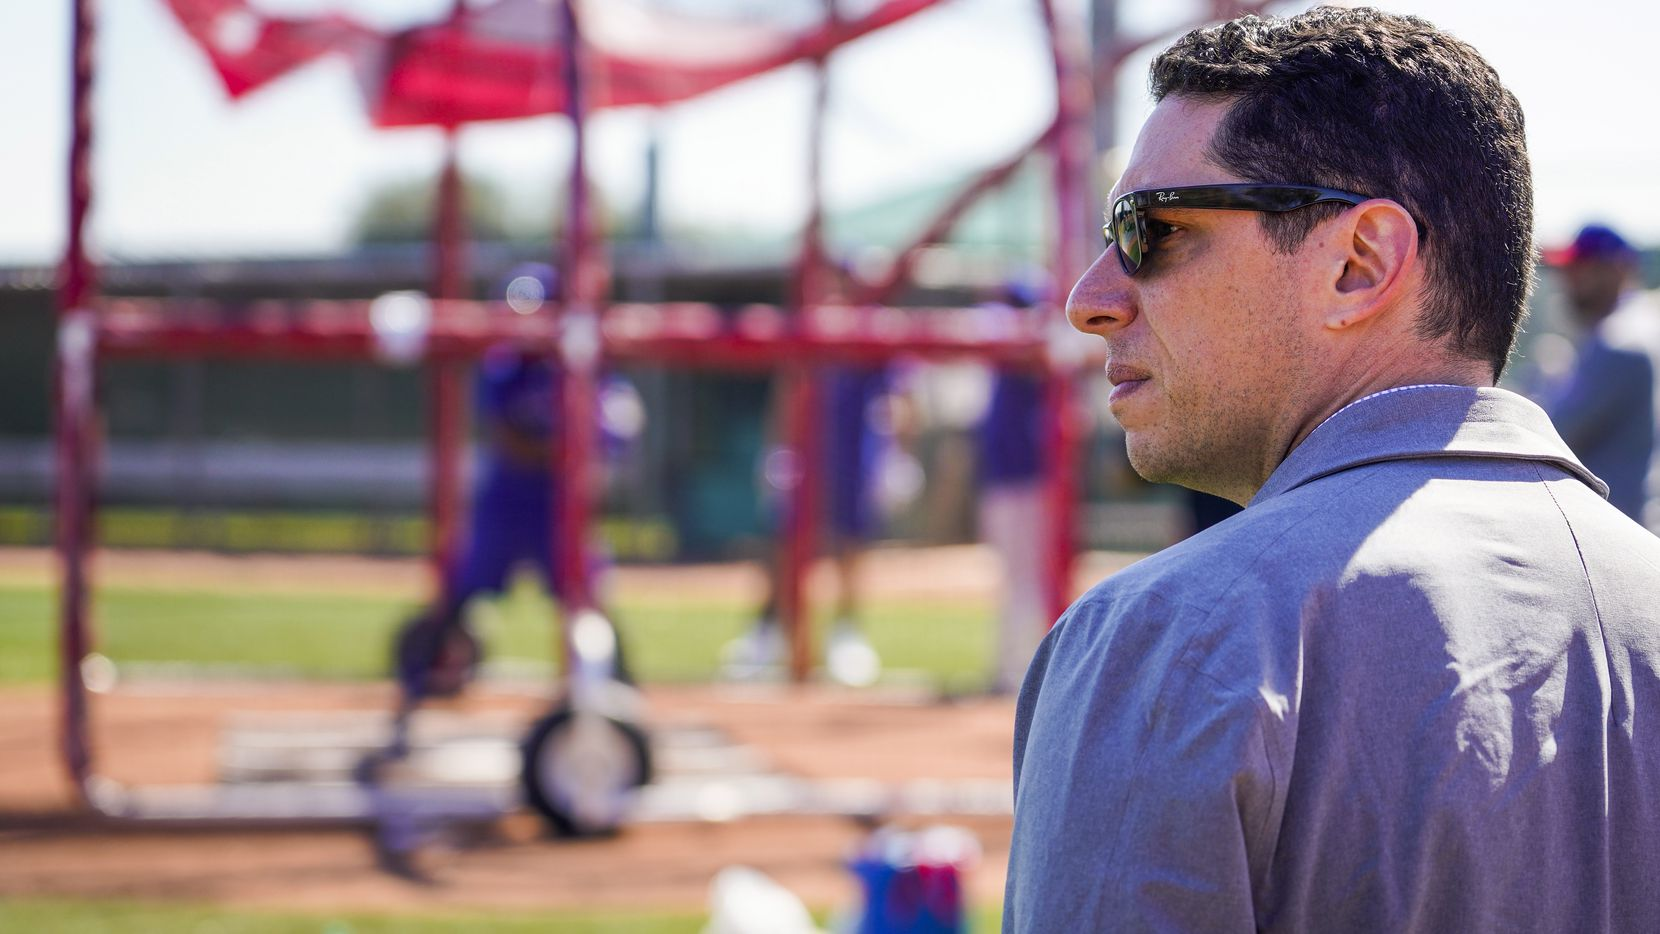 FILE - Rangers general manager Jon Daniels looks on during a spring training workout at the team's training facility on Saturday, Feb. 15, 2020, in Surprise, Ariz.